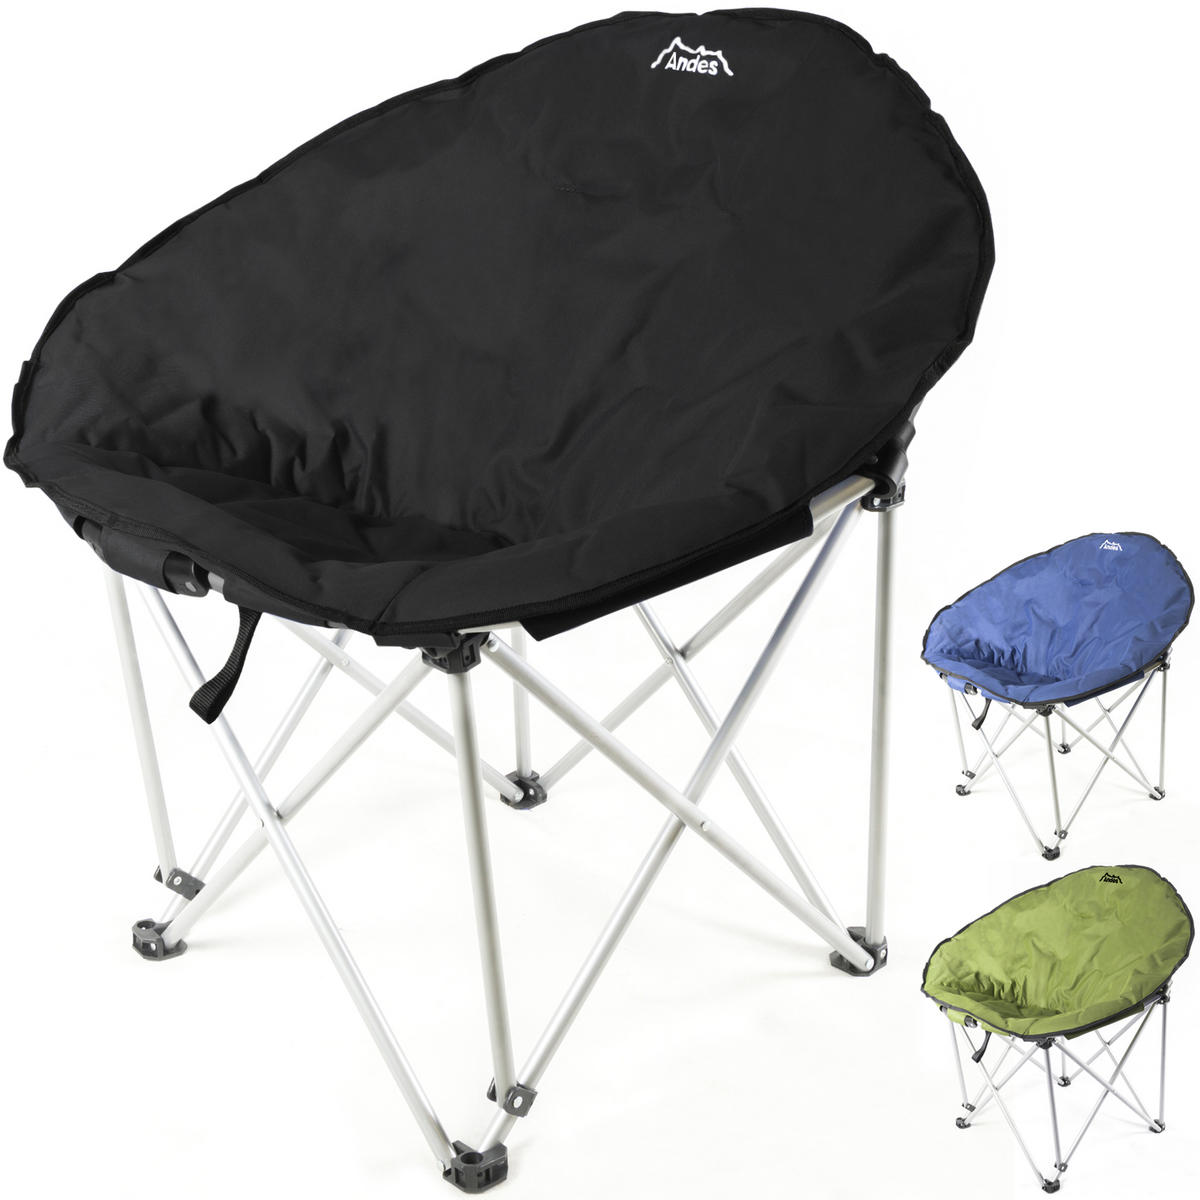 Andes Camping Moon Chair